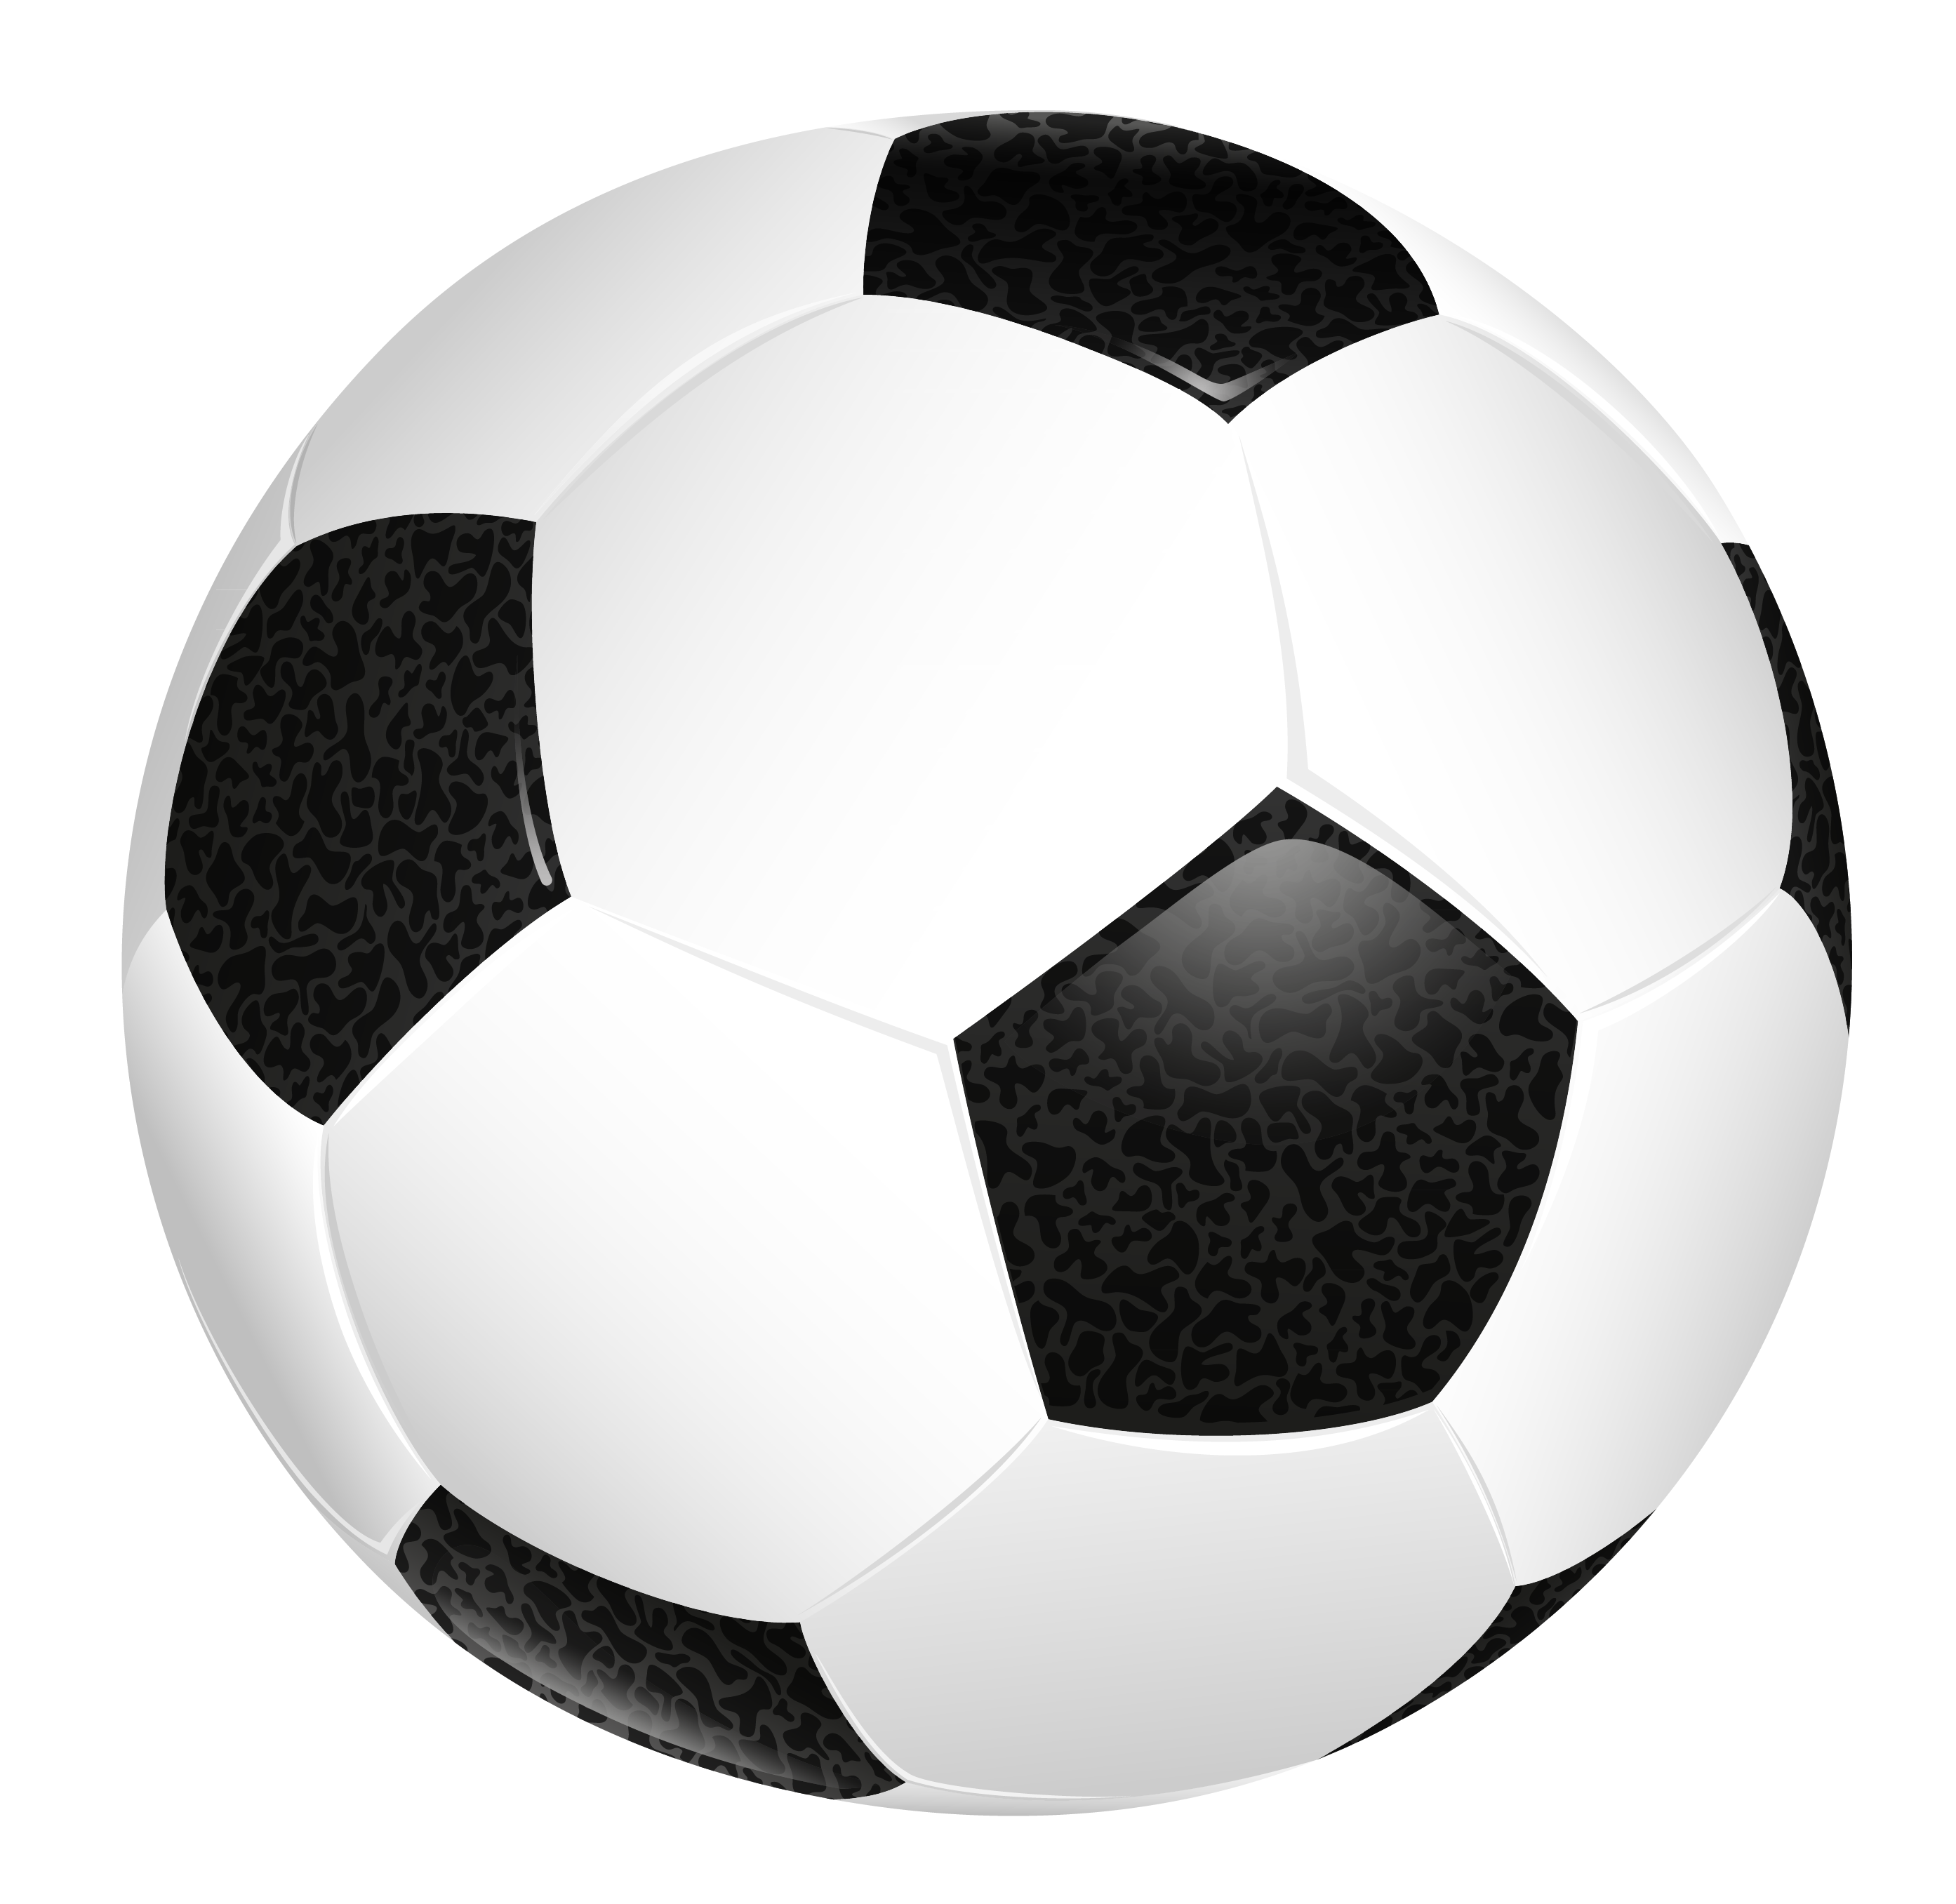 Soccer ball clipart background picture freeuse Transparent Soccer Ball Clipart - Clipart Kid picture freeuse